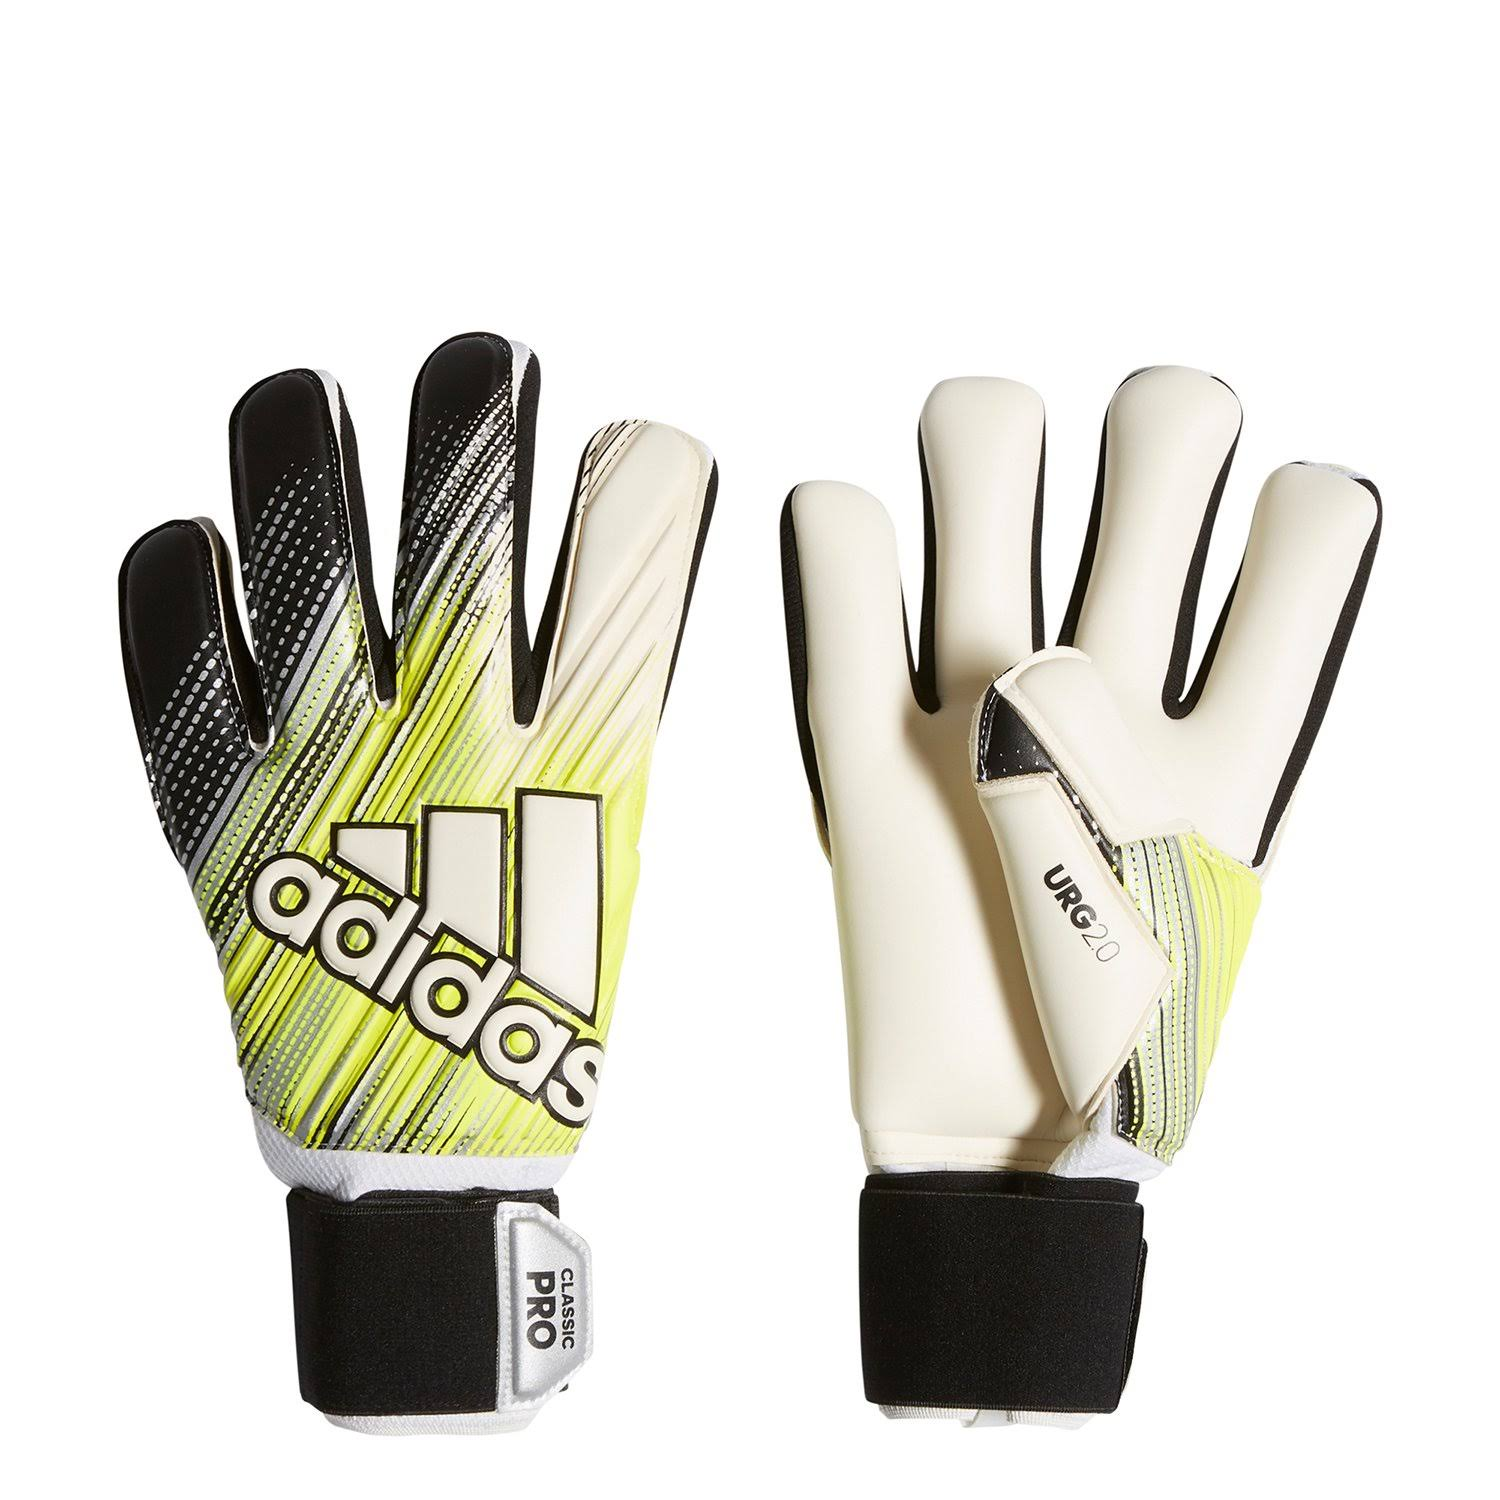 Adidas Classic Pro Goalkeeper Gloves - 11